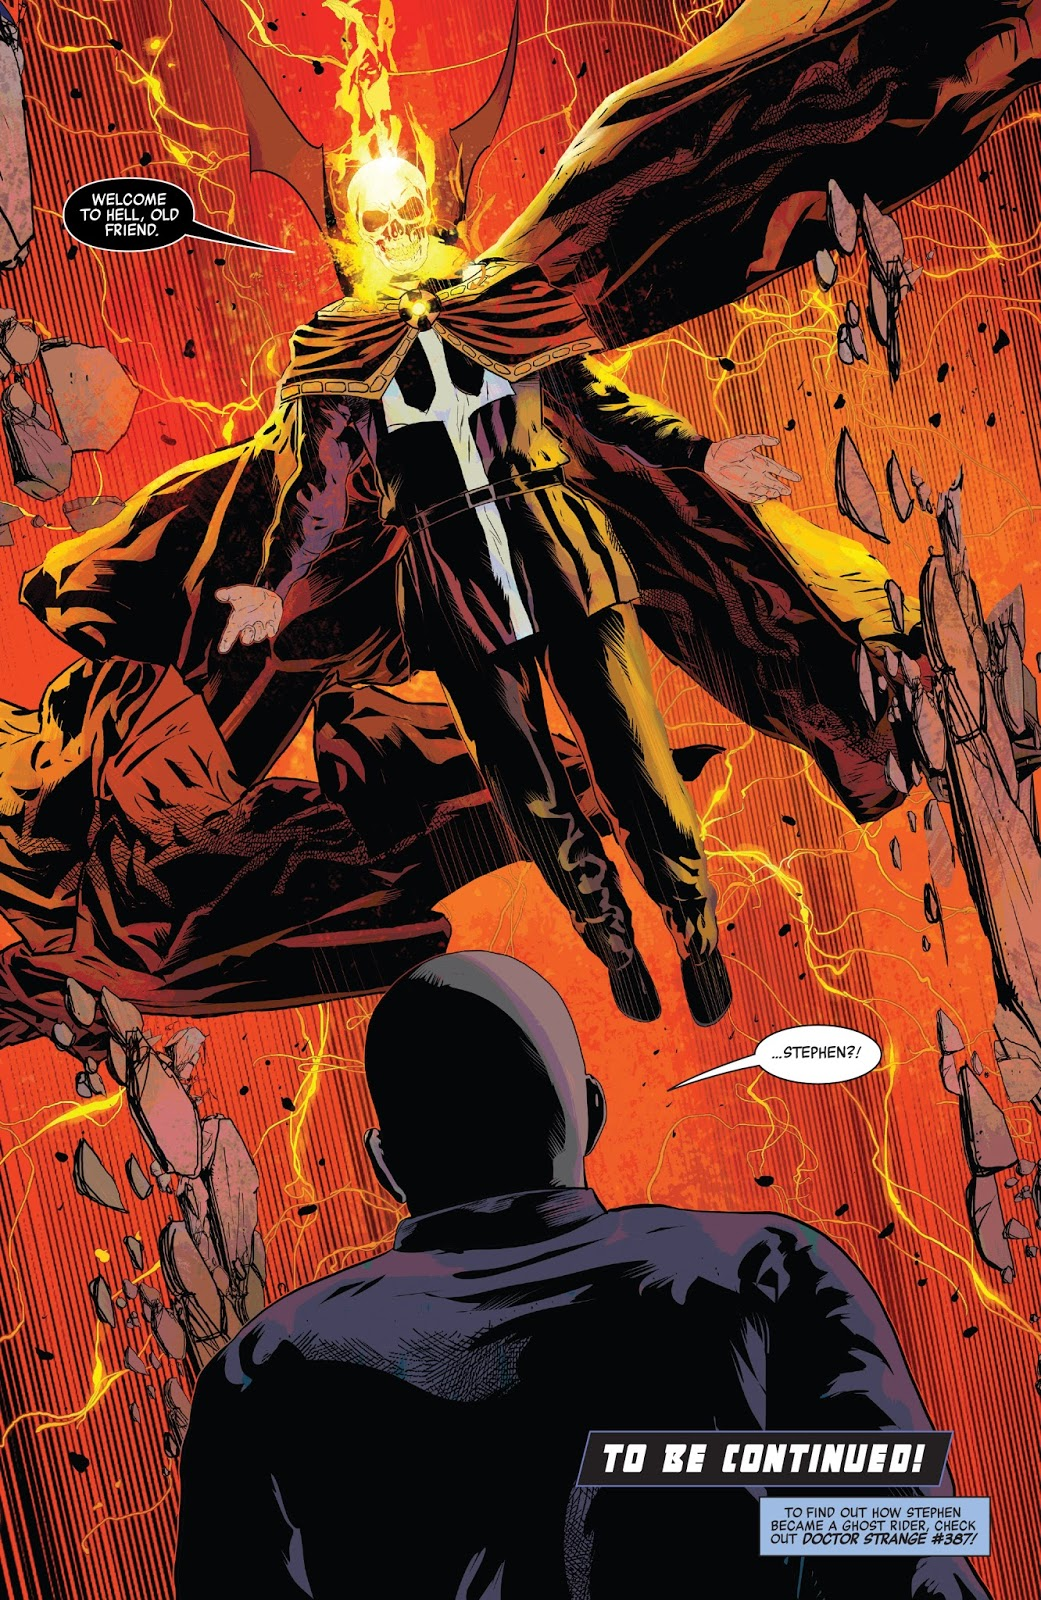 marvel just created a brand new ghost rider! - bounding into comics